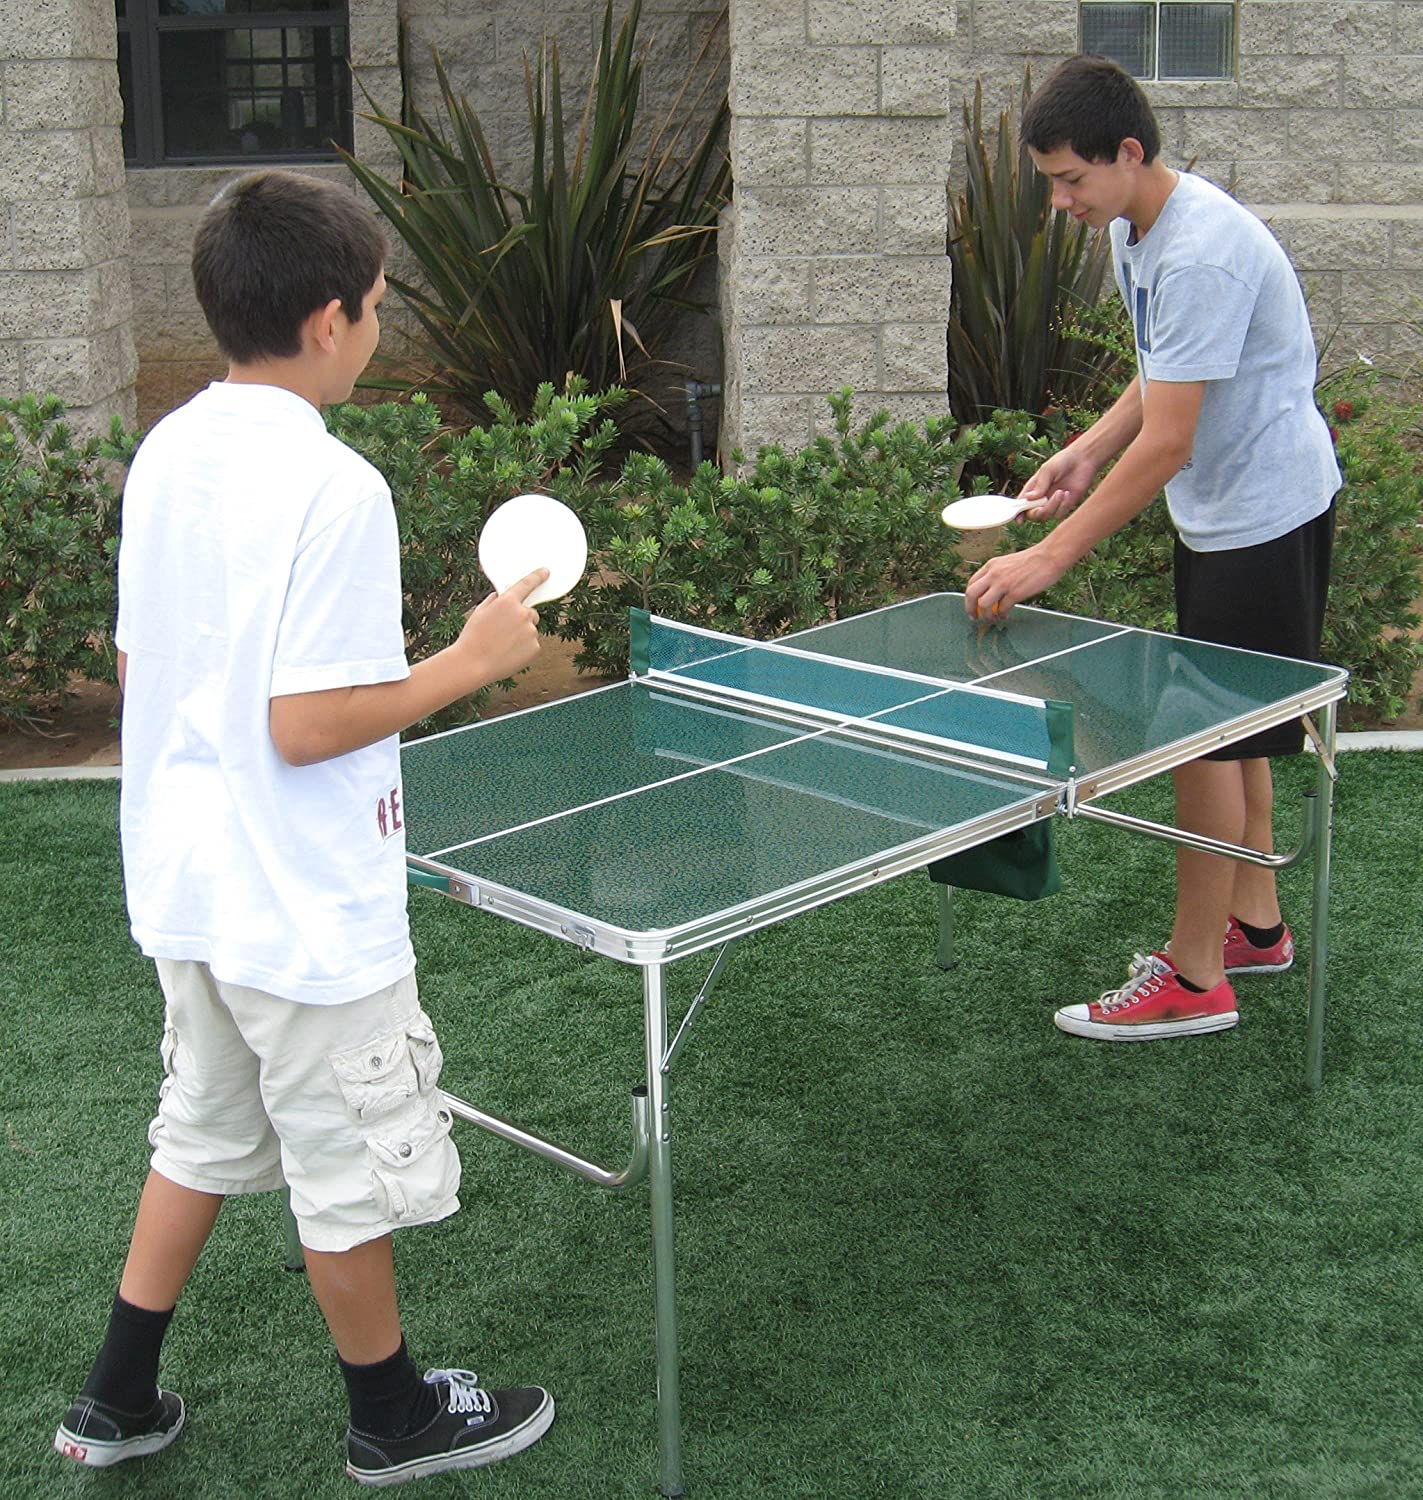 Superieur Amazon.com : Unique Oasis Mini Cool Ping Pong Table 5 Years Warranty High  Quality Product Lightweight And Portable : Sports U0026 Outdoors